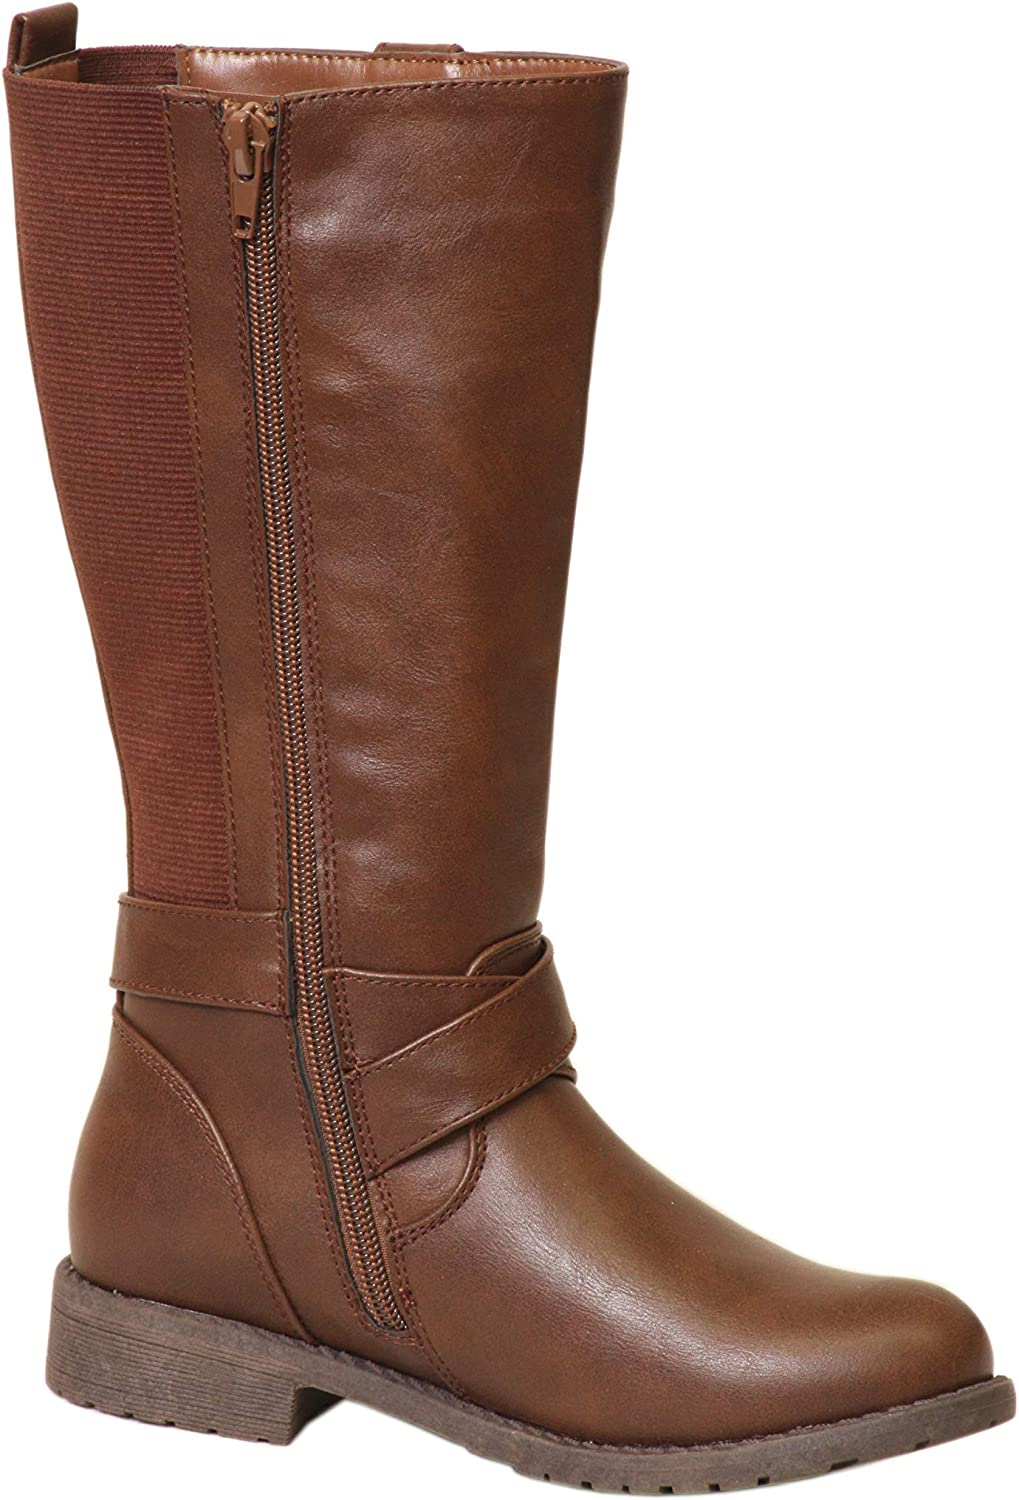 girls brown riding boots